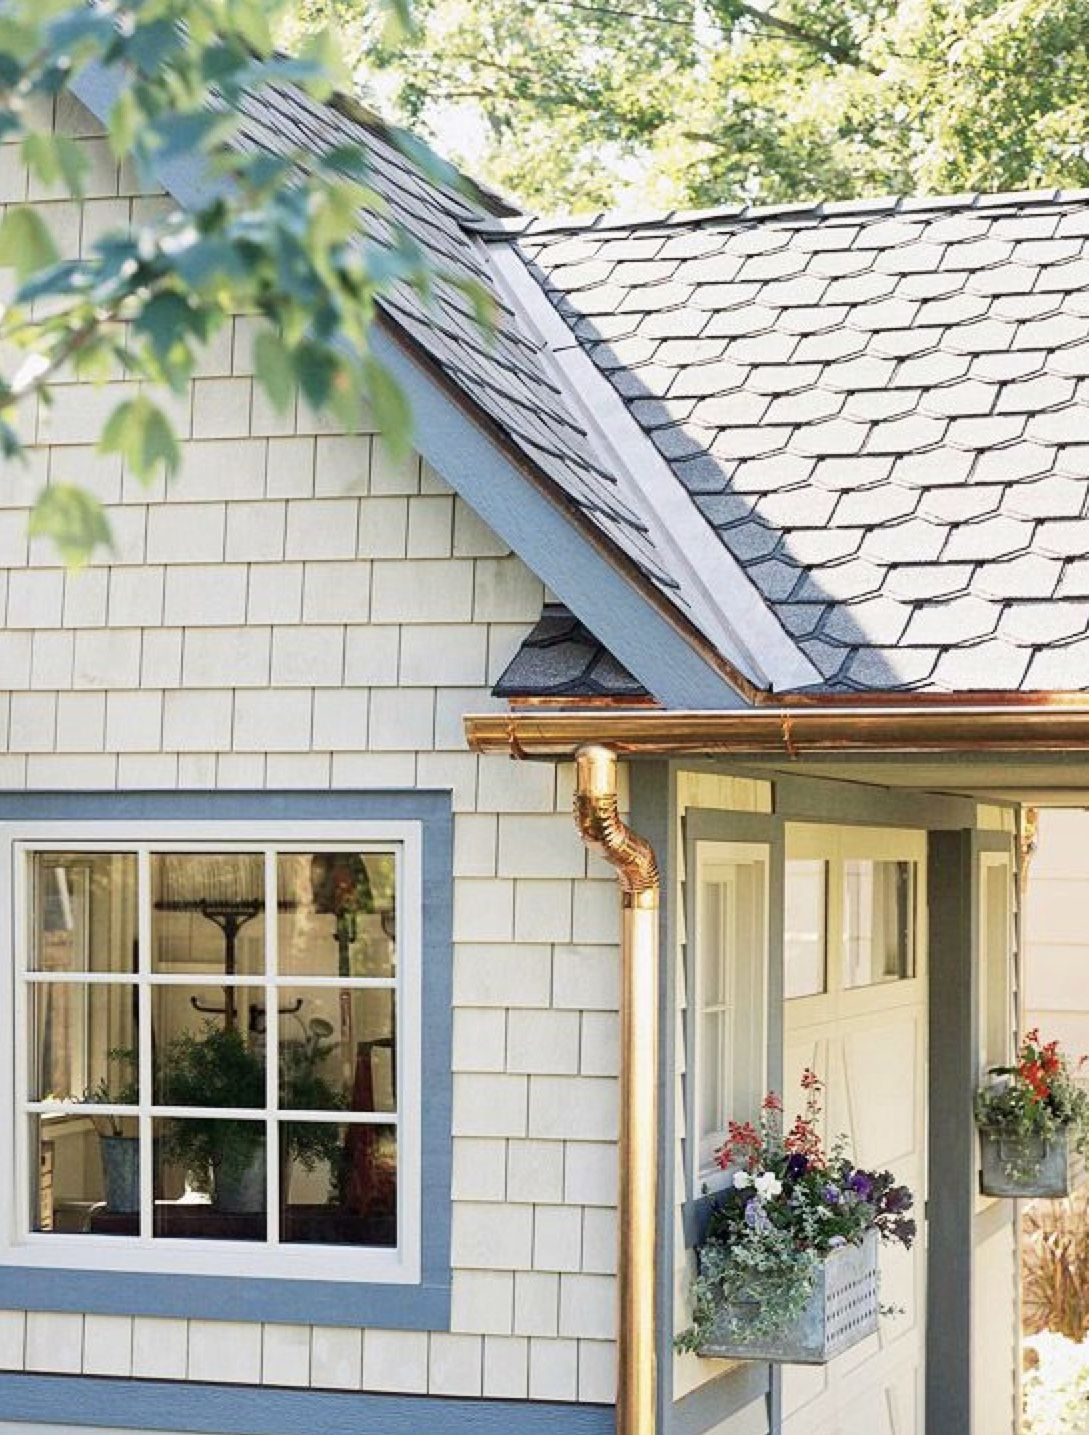 Gutter Cleaning In Birmingham Alabama Clean Pro Gutter Cleaning Has Been In The Exterior Gutter Cleaning In Birmingham Galvanized Gutters Gutters Gable Roof